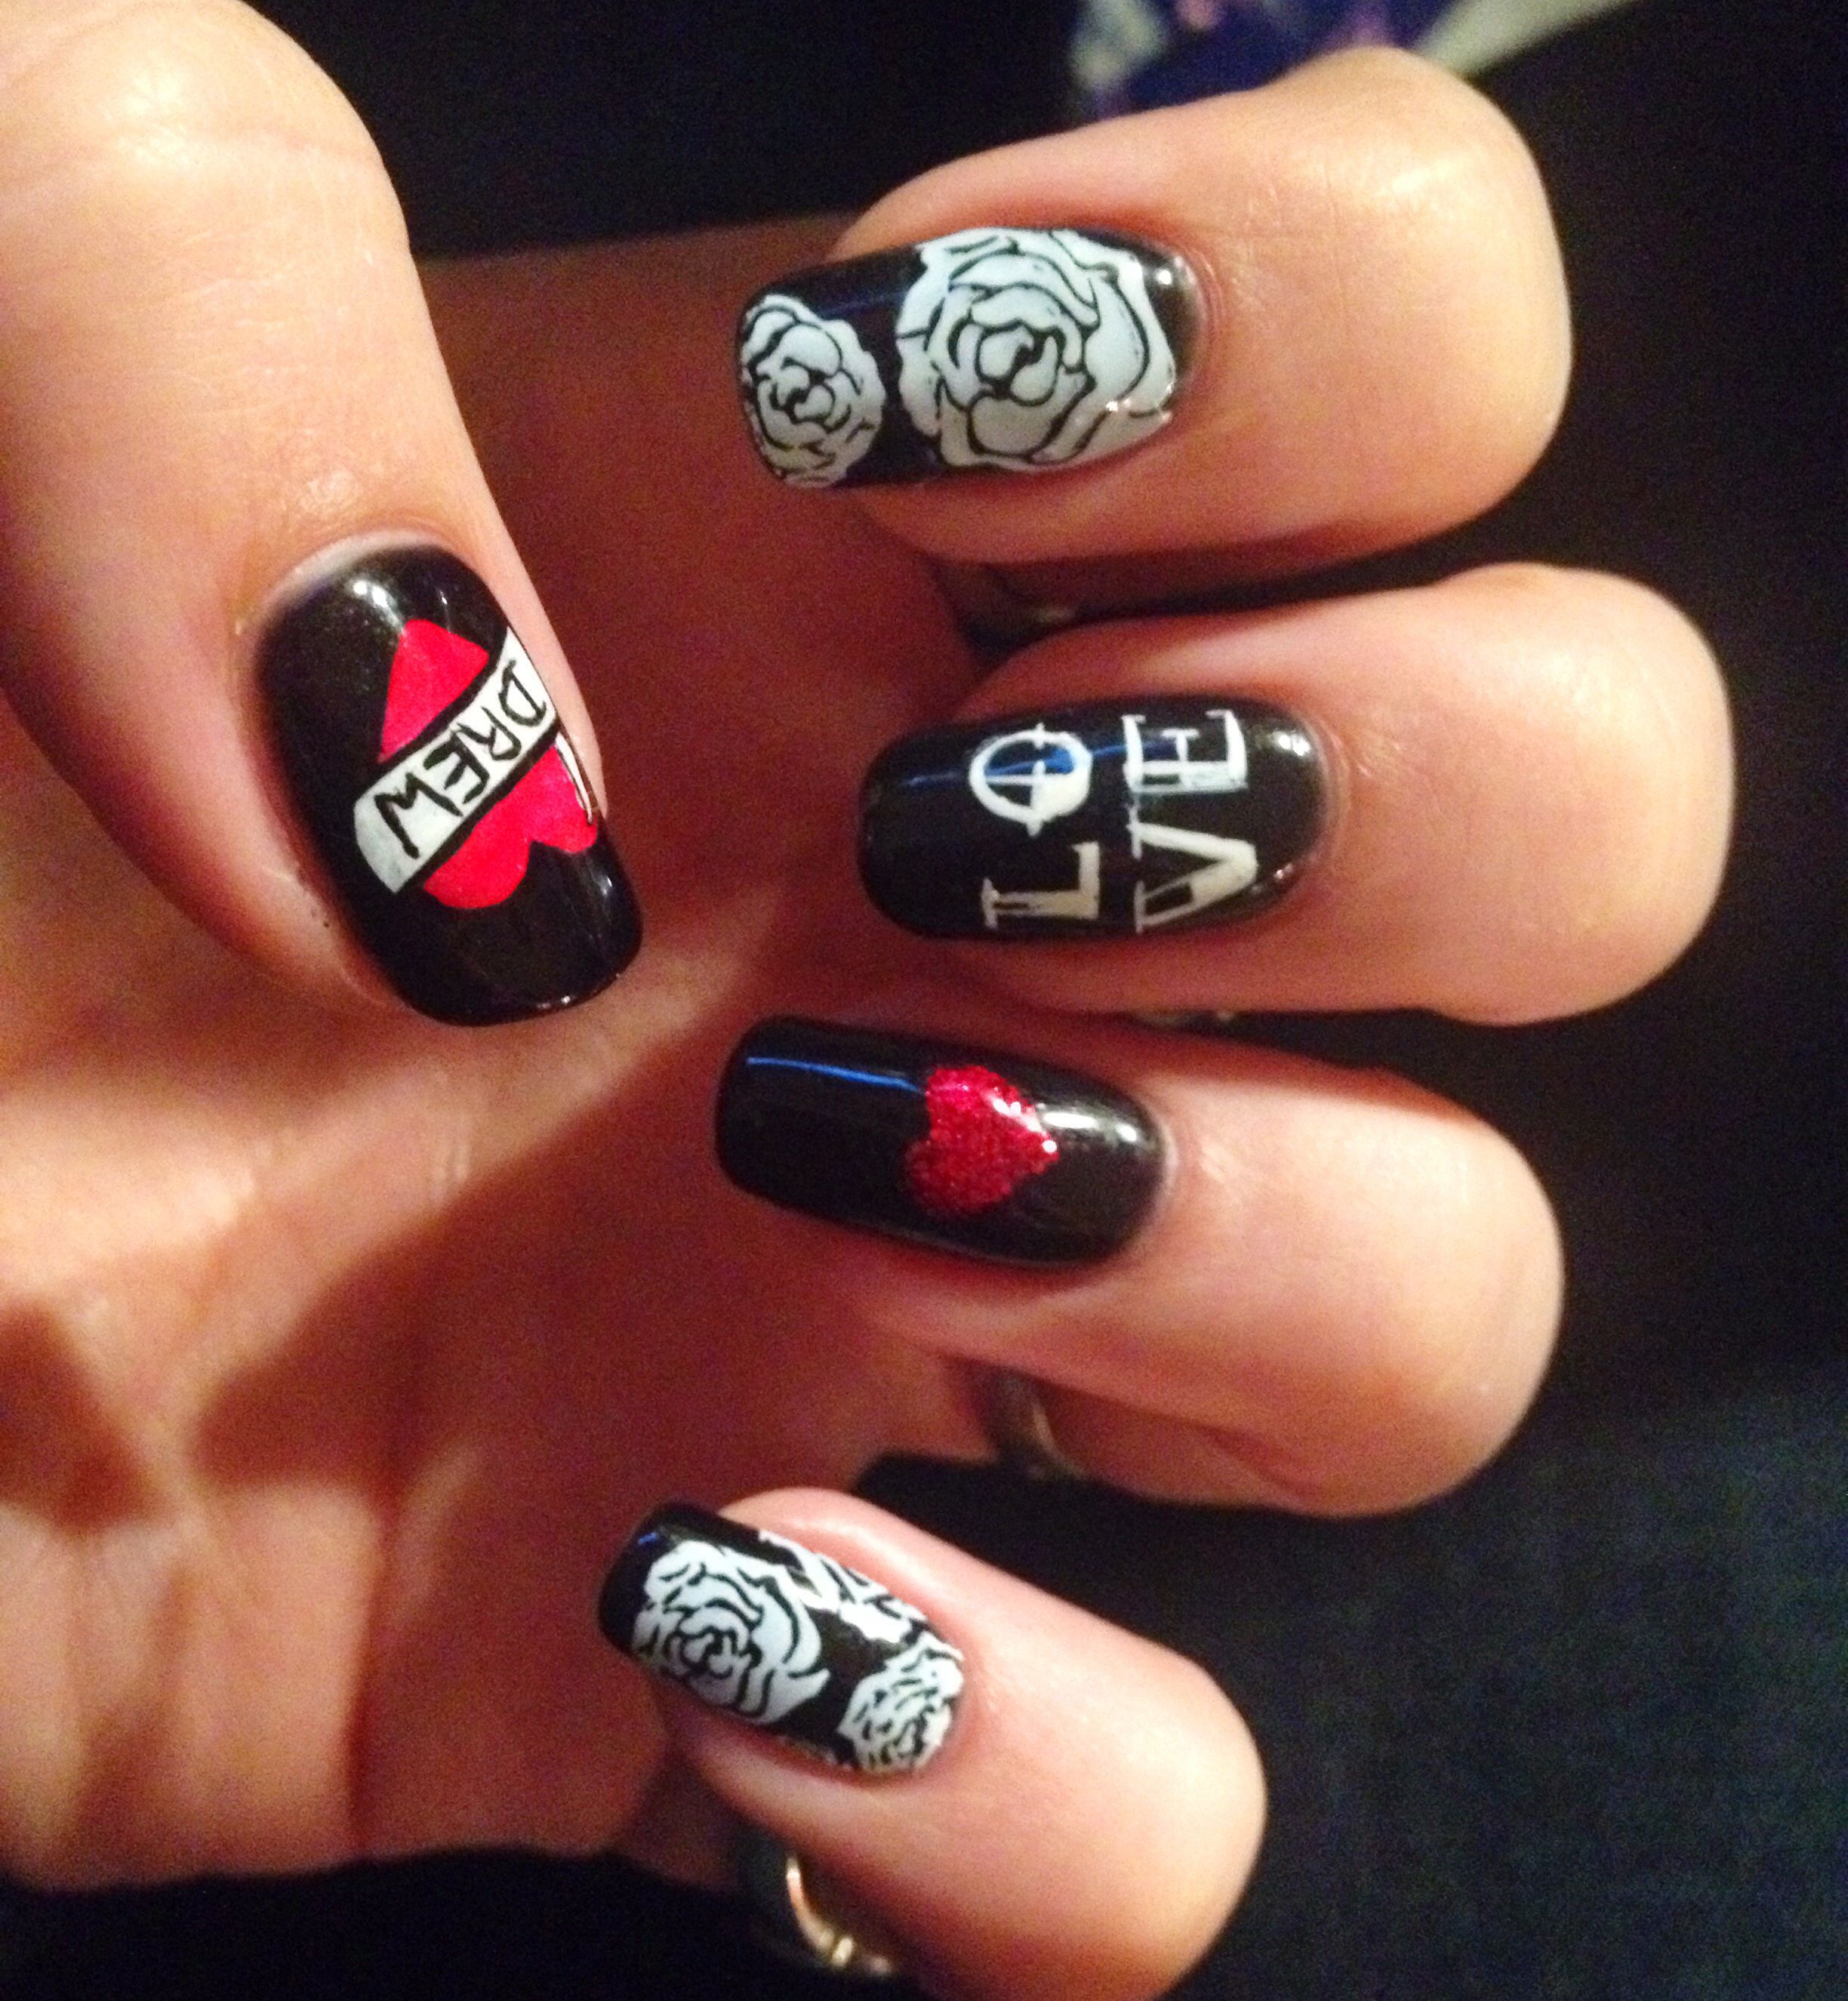 Rock n roll valentine nails tattoo nails hand painted nail art rock n roll valentine nails tattoo nails hand painted nail art love nails prinsesfo Image collections